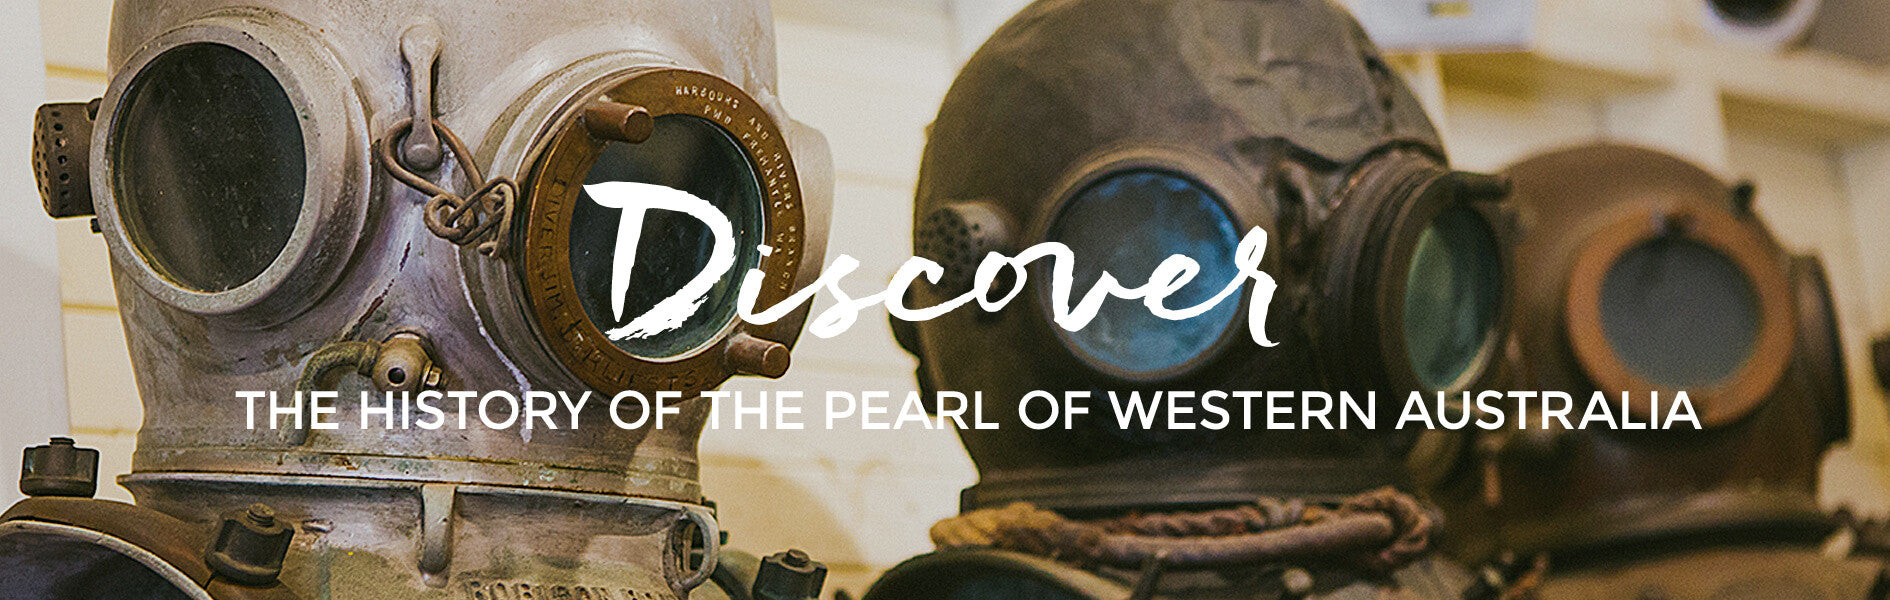 Discover the Pearl of Western Australia